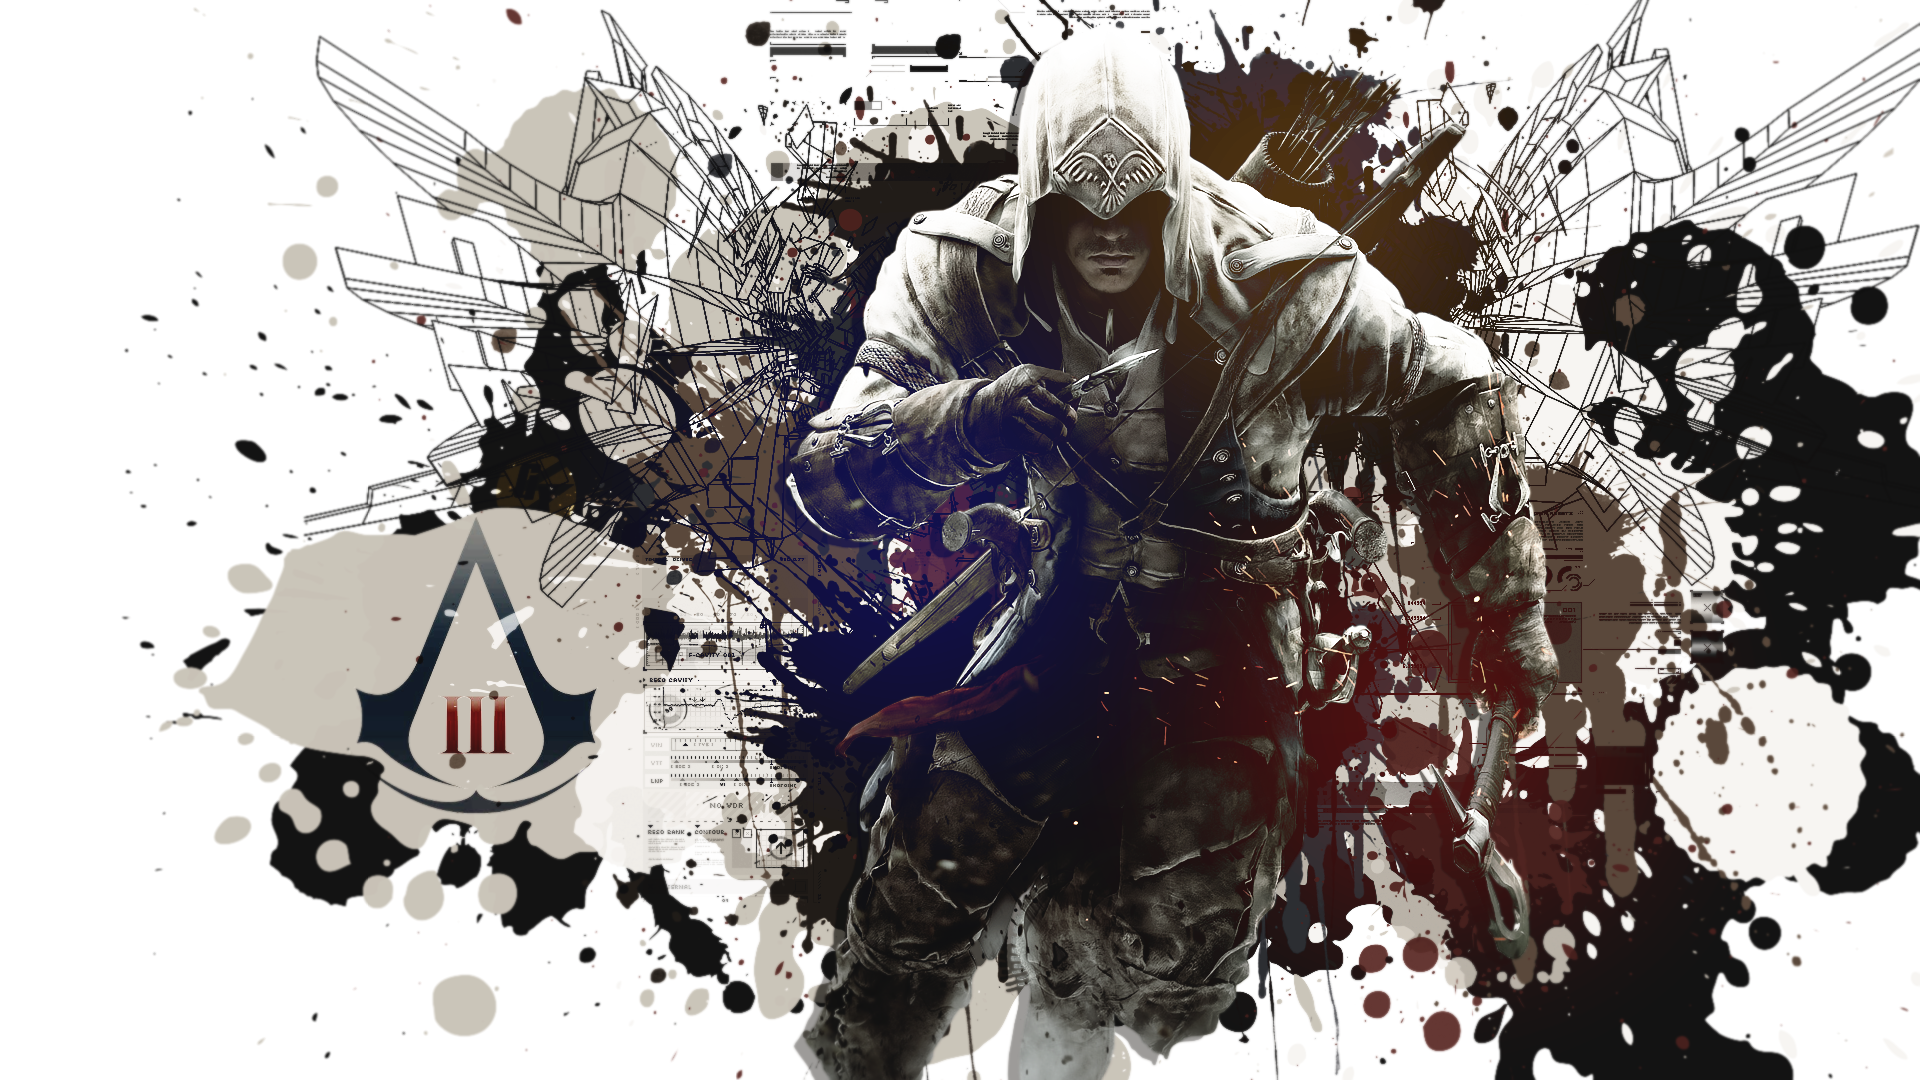 Assasins creed 3 wallpaper 1080p by gigy1996 on deviantart assasins creed 3 wallpaper 1080p by gigy1996 voltagebd Choice Image